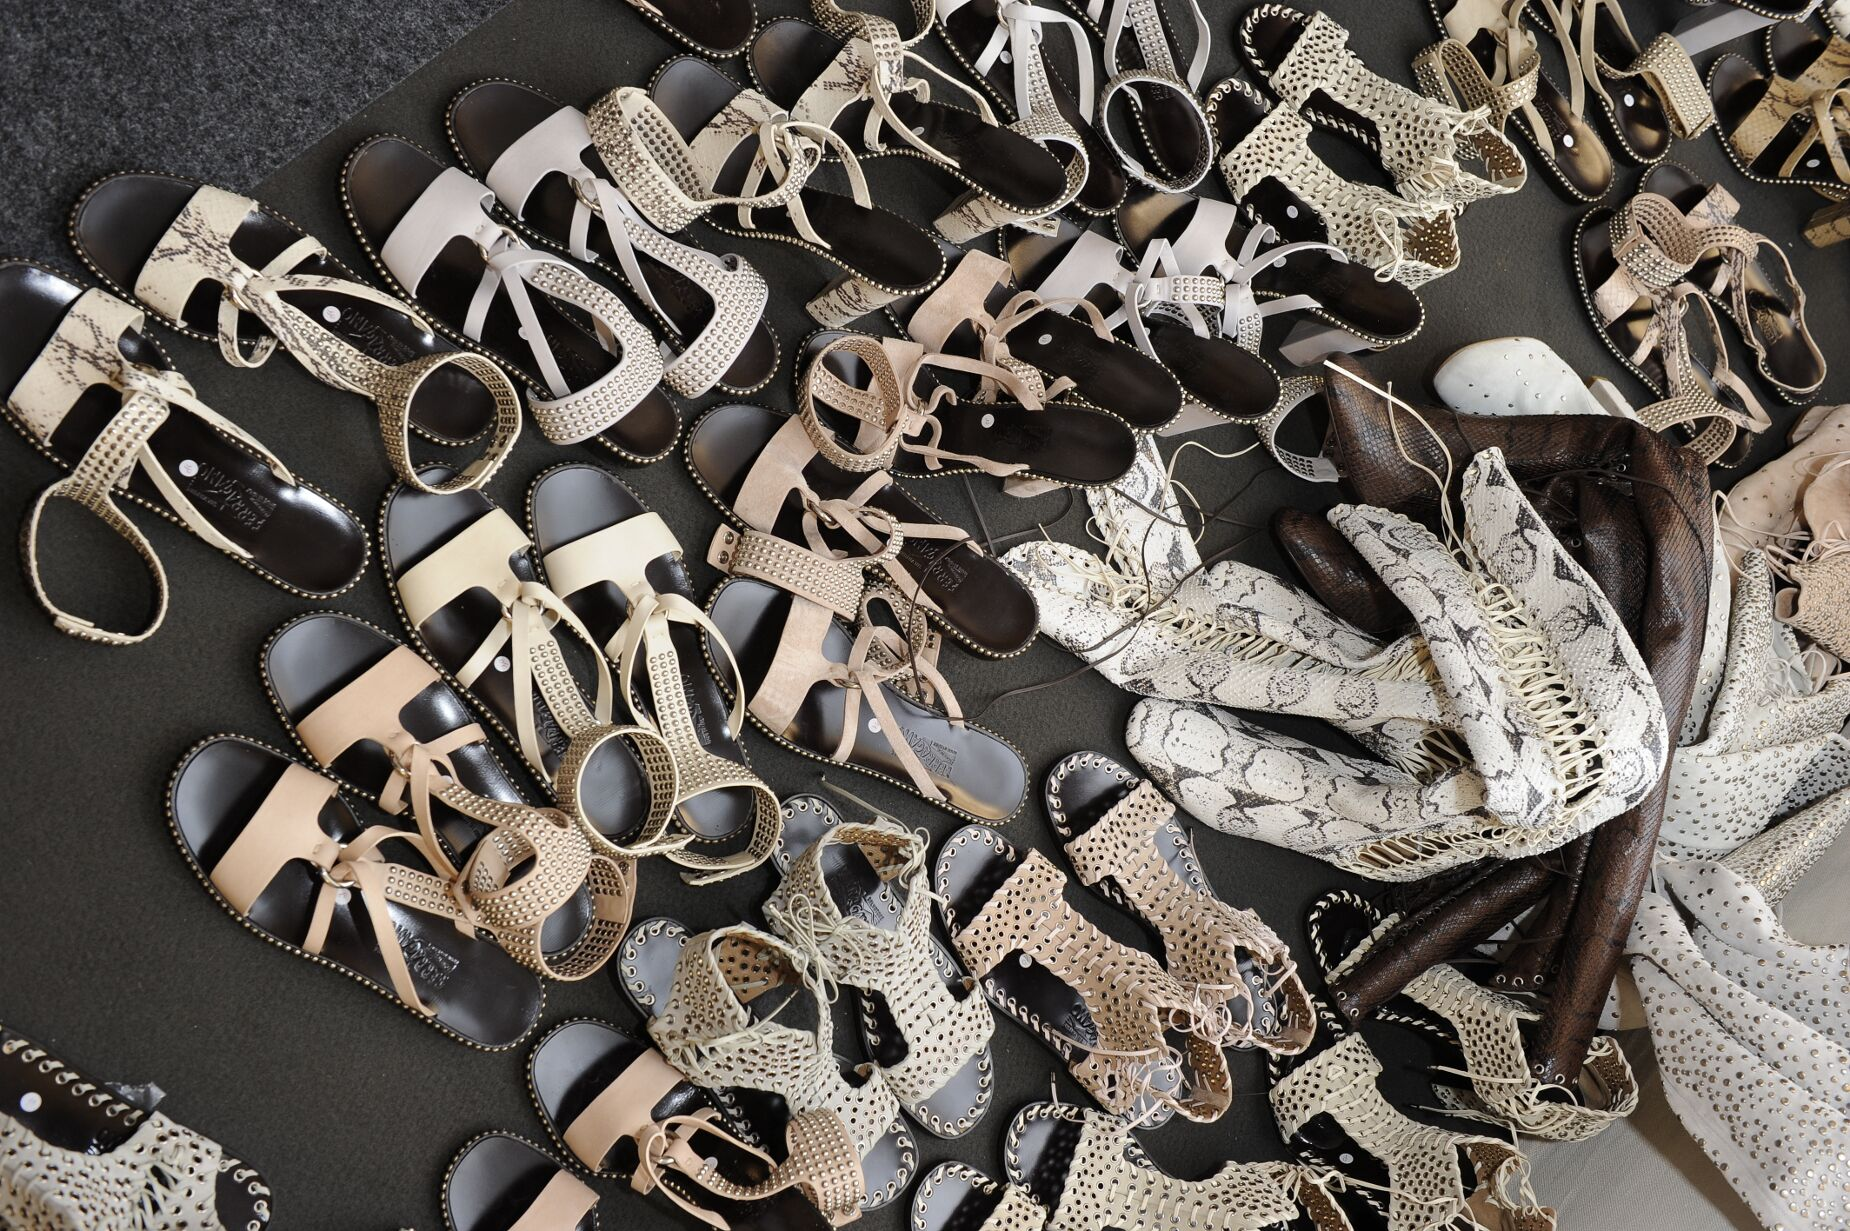 Salvatore Ferragamo Shoes Backstage